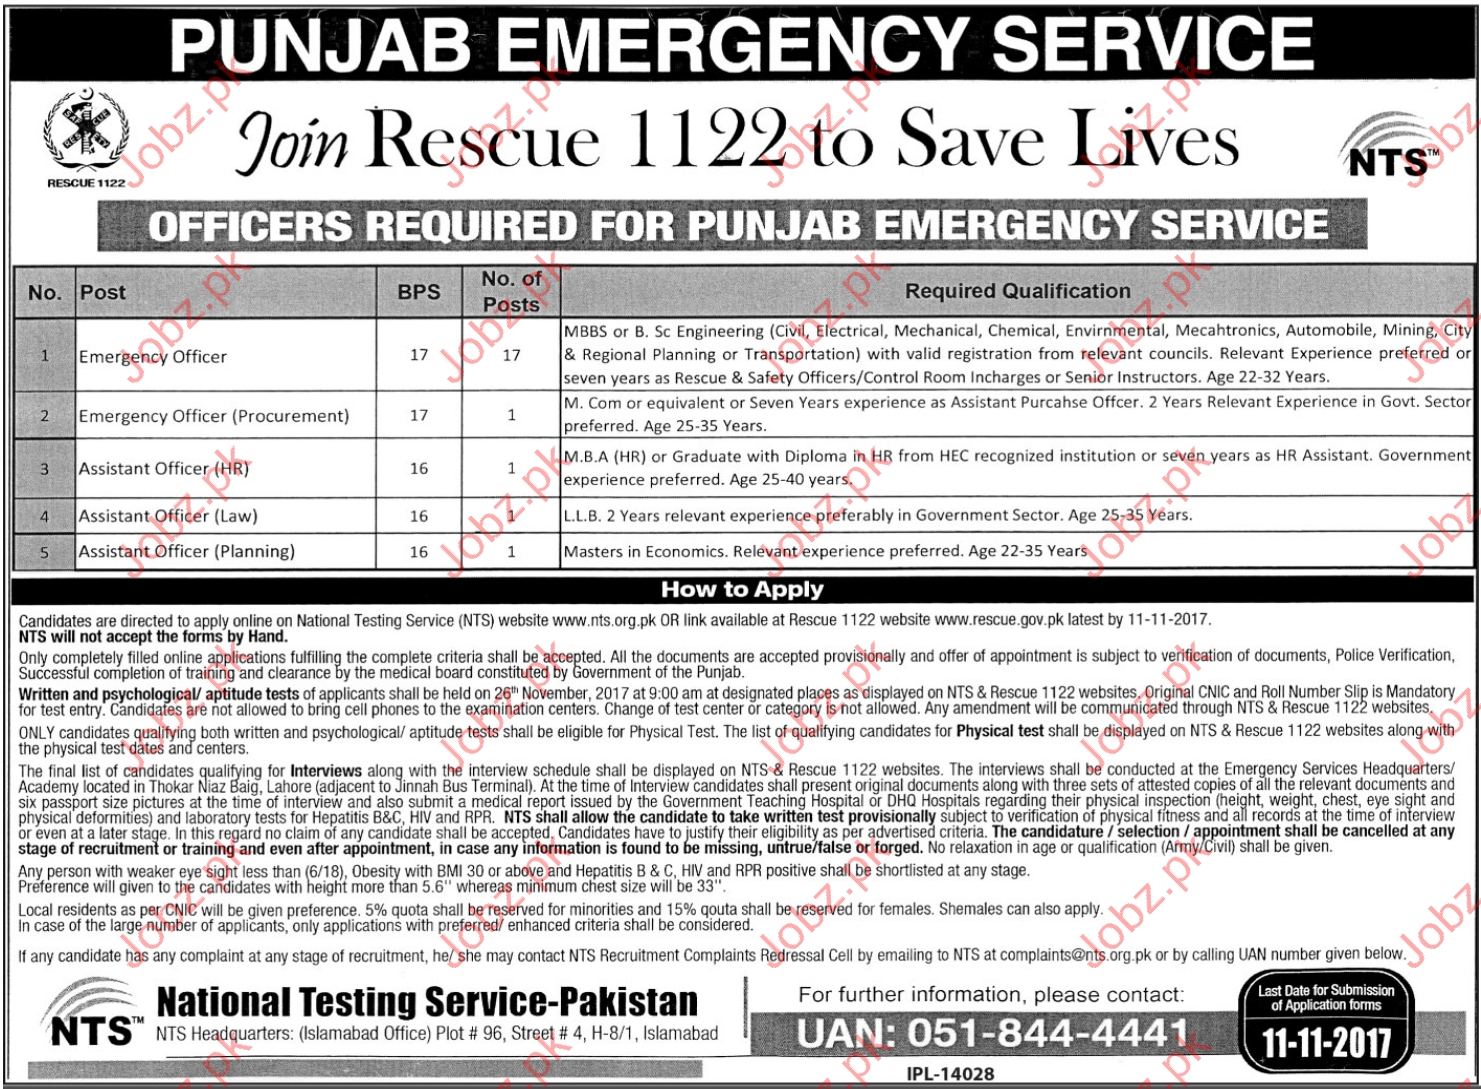 Join Punjab Emergency Service Rescue 1122 Via NTS